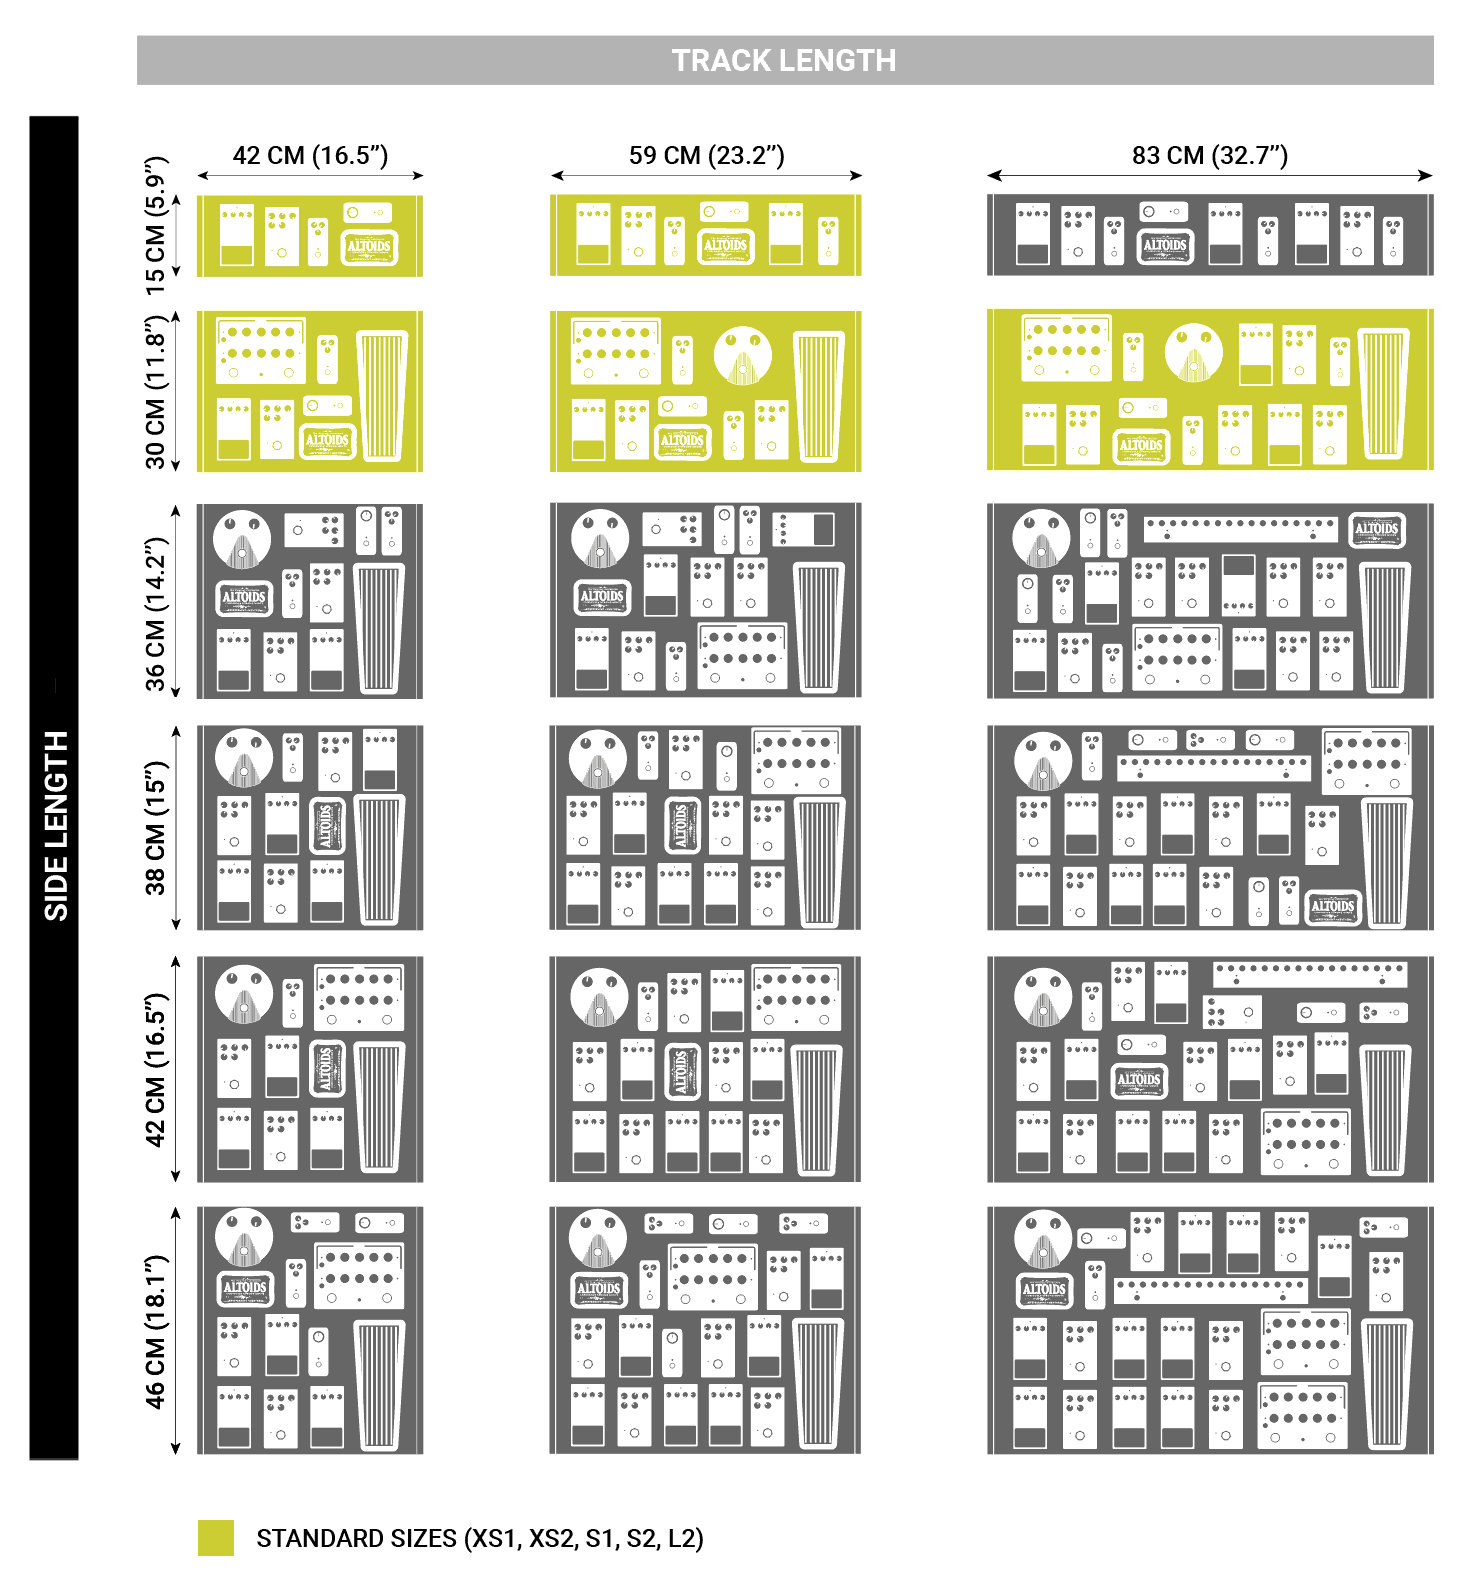 Aclam pedalboard dimensions and sizes